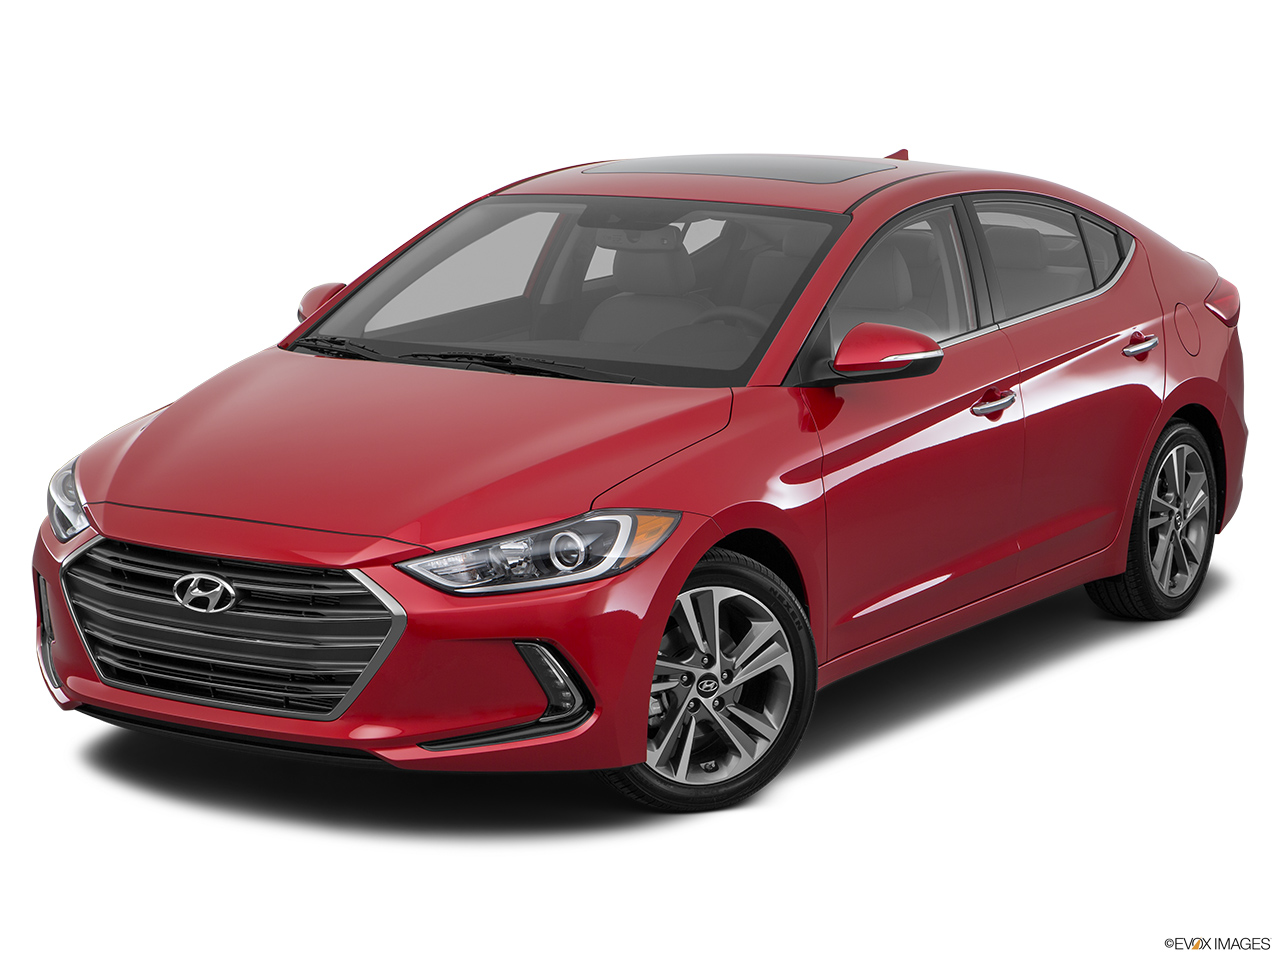 hyundai elantra price in uae new hyundai elantra photos and specs yallamotor. Black Bedroom Furniture Sets. Home Design Ideas